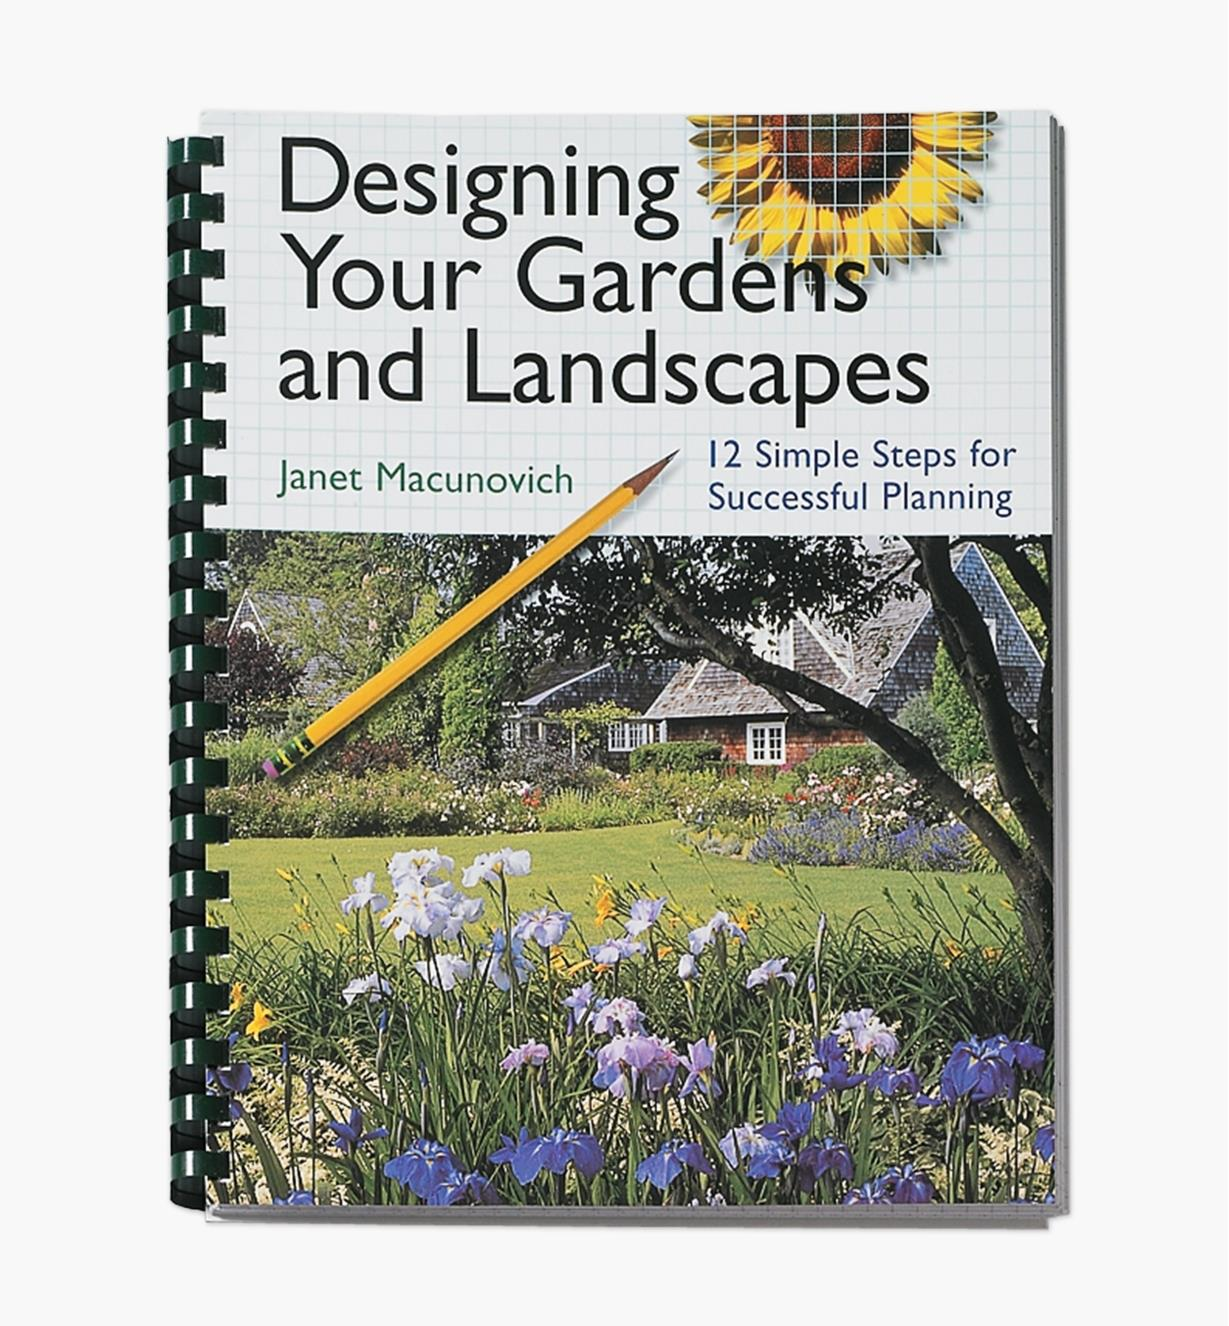 LA642 - Designing Your Gardens and Landscapes